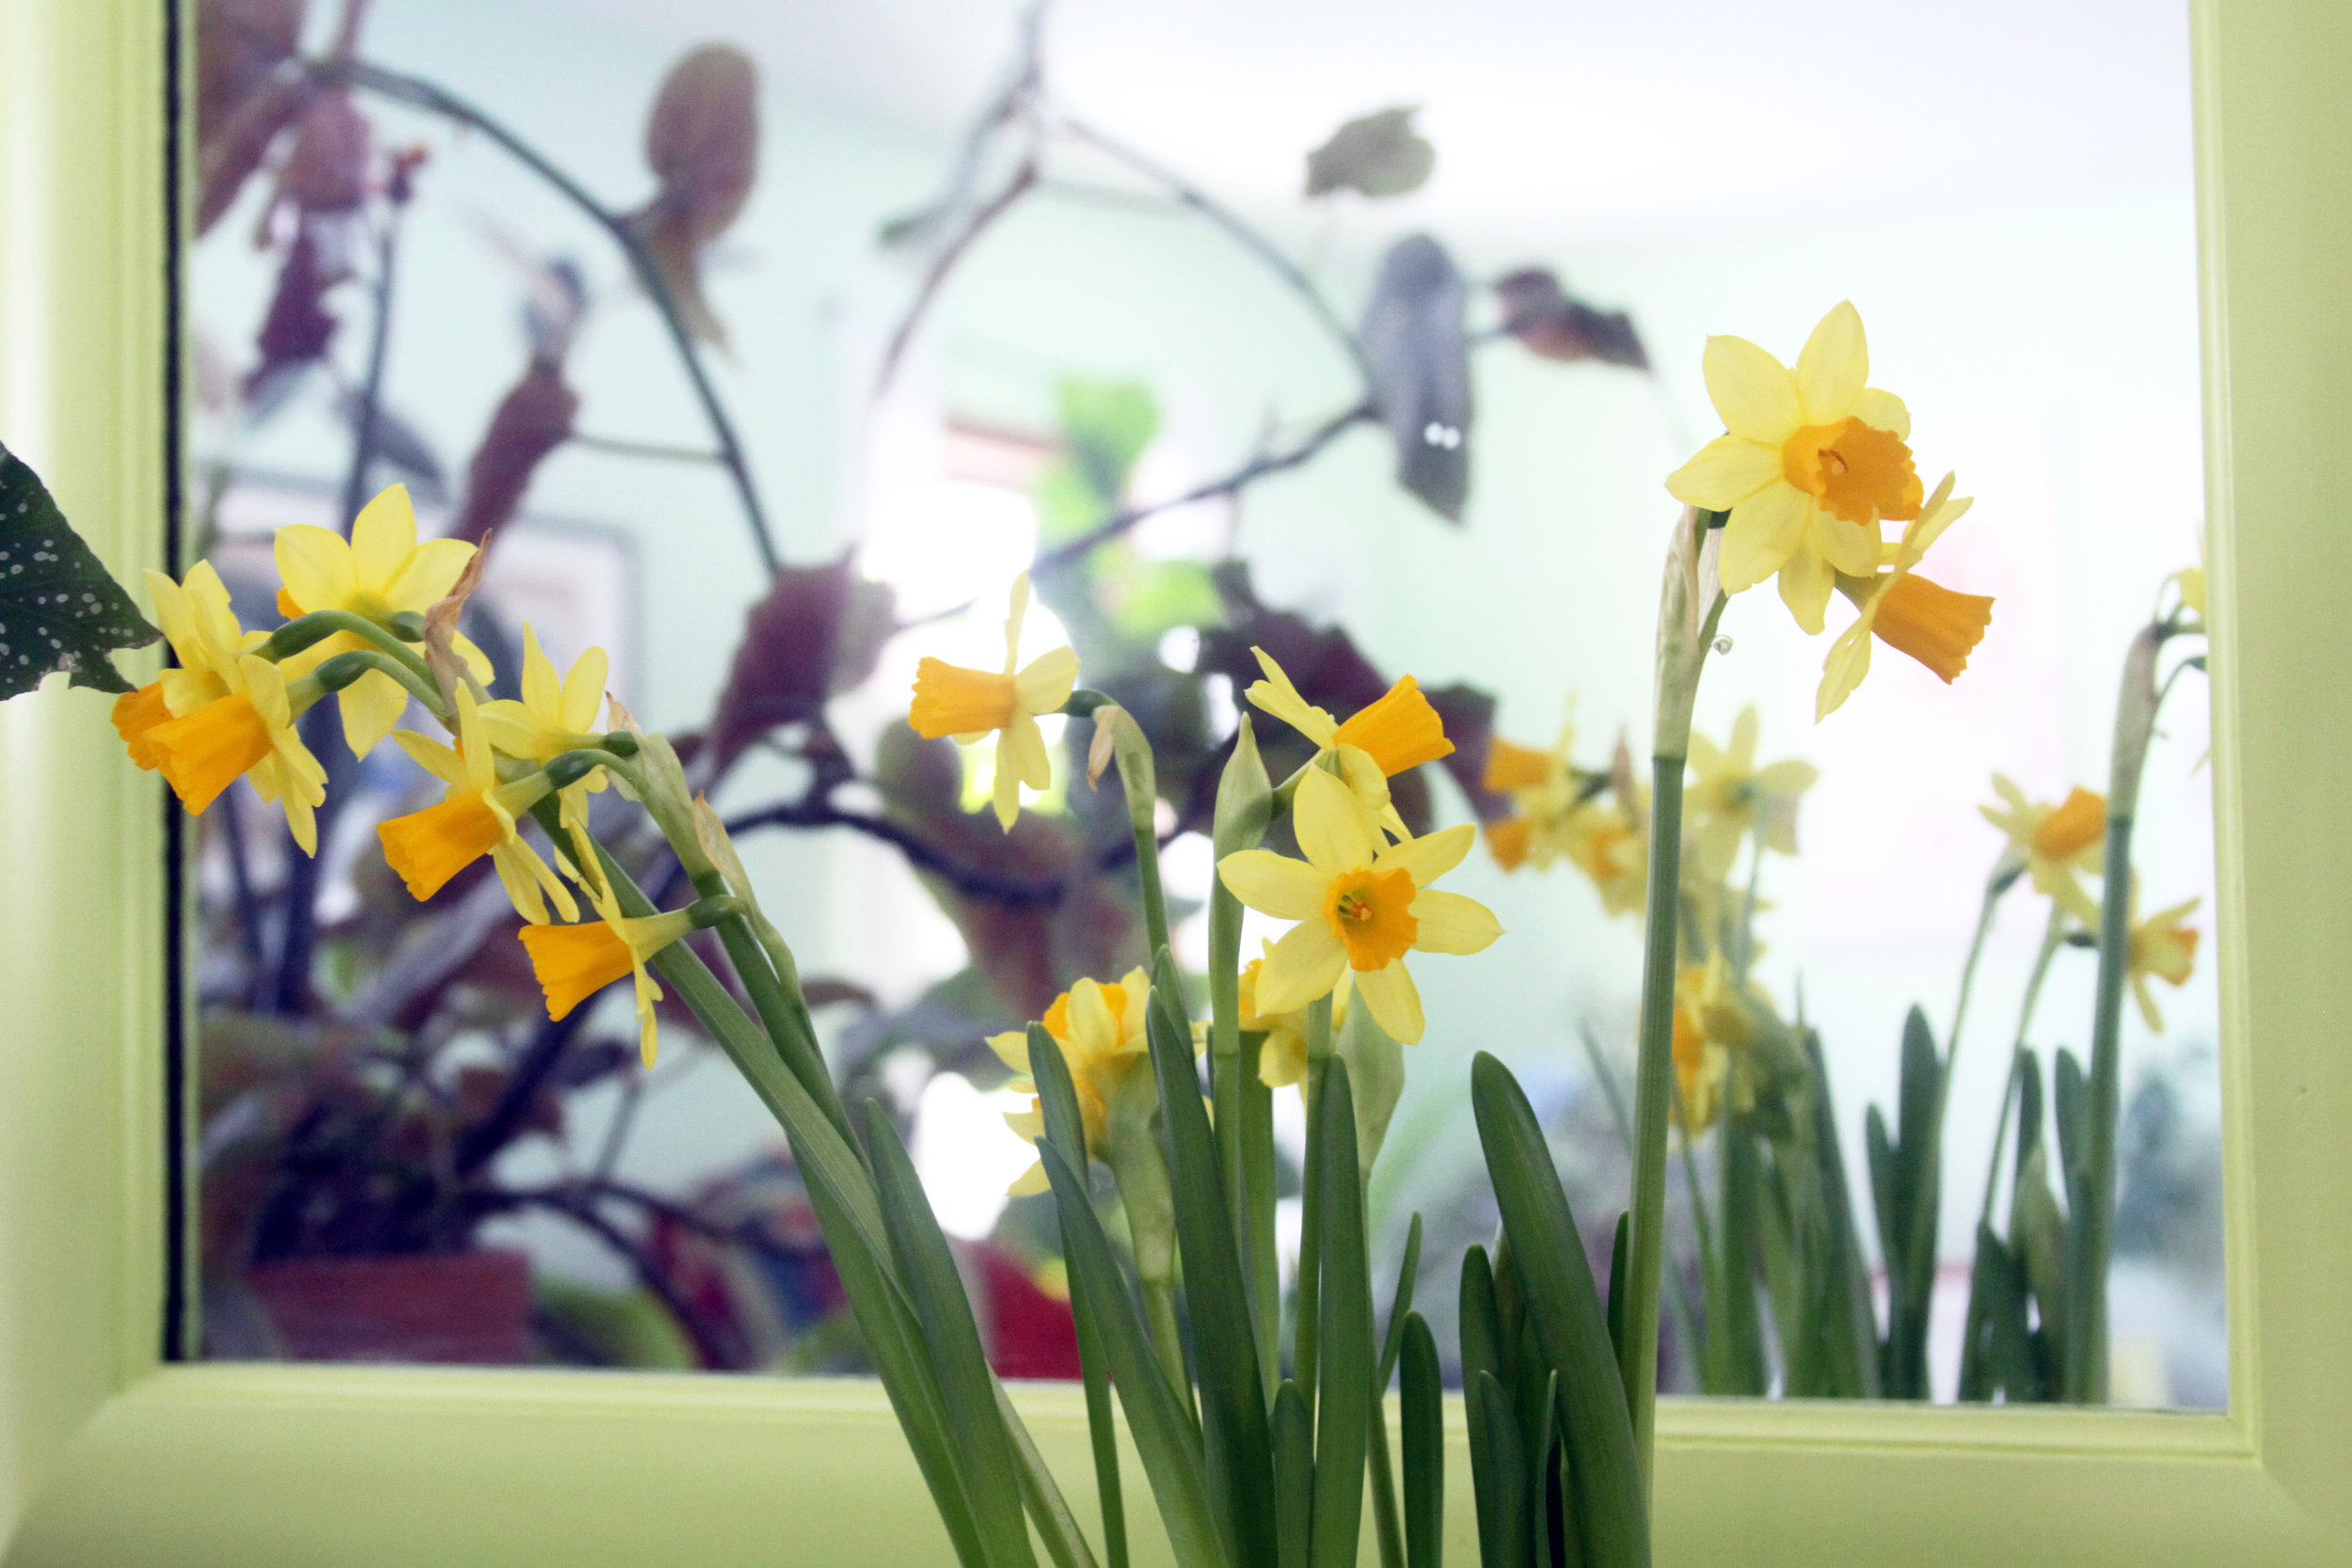 Daffodils Bring Cheer to Winter Dreariness When They're Blooming Inside